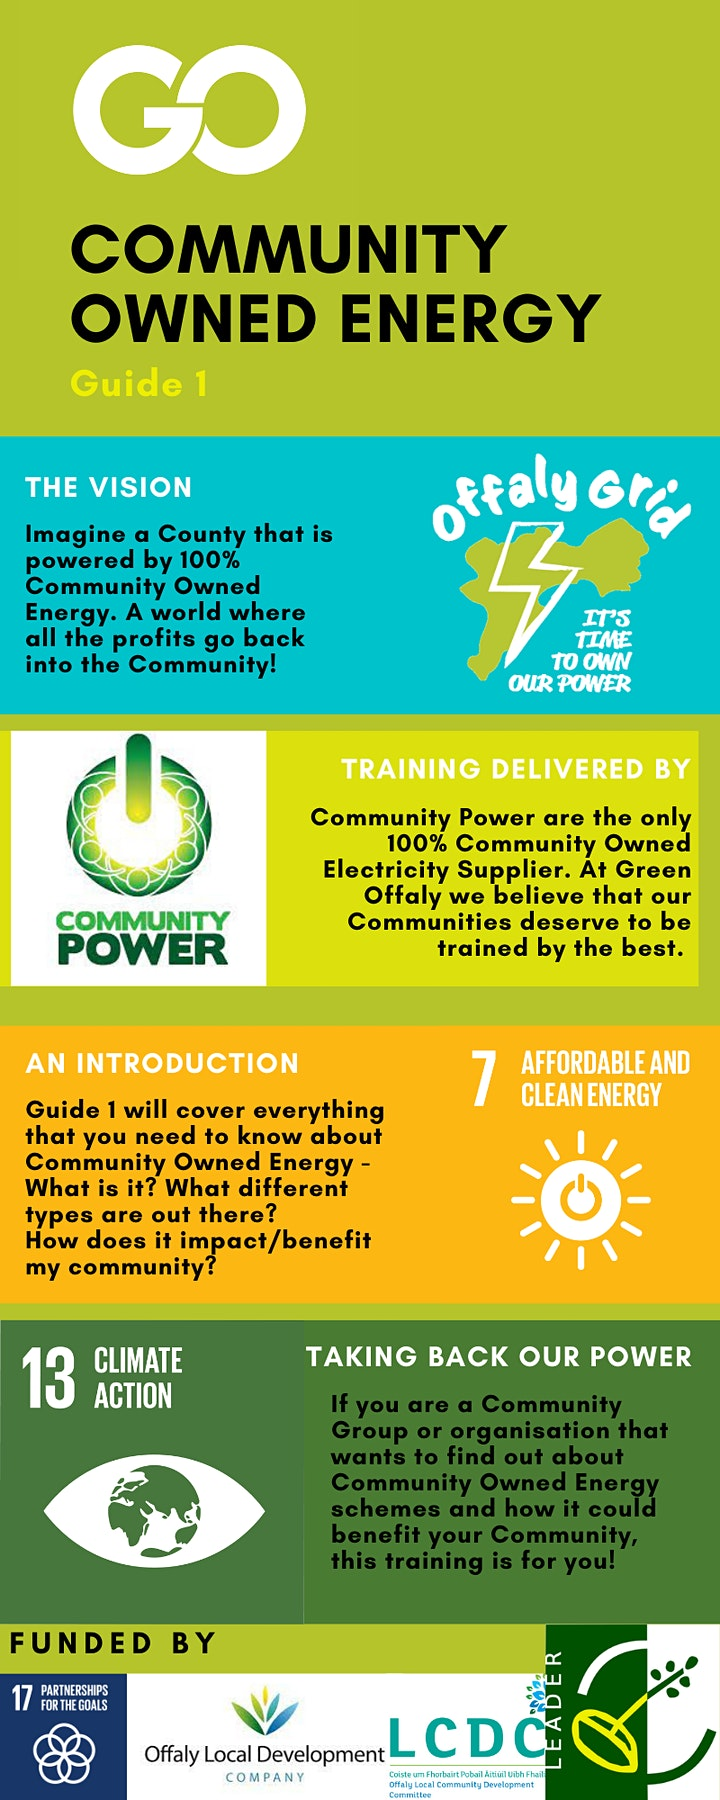 An Introduction to Community Owned Energy - Guide 1 image